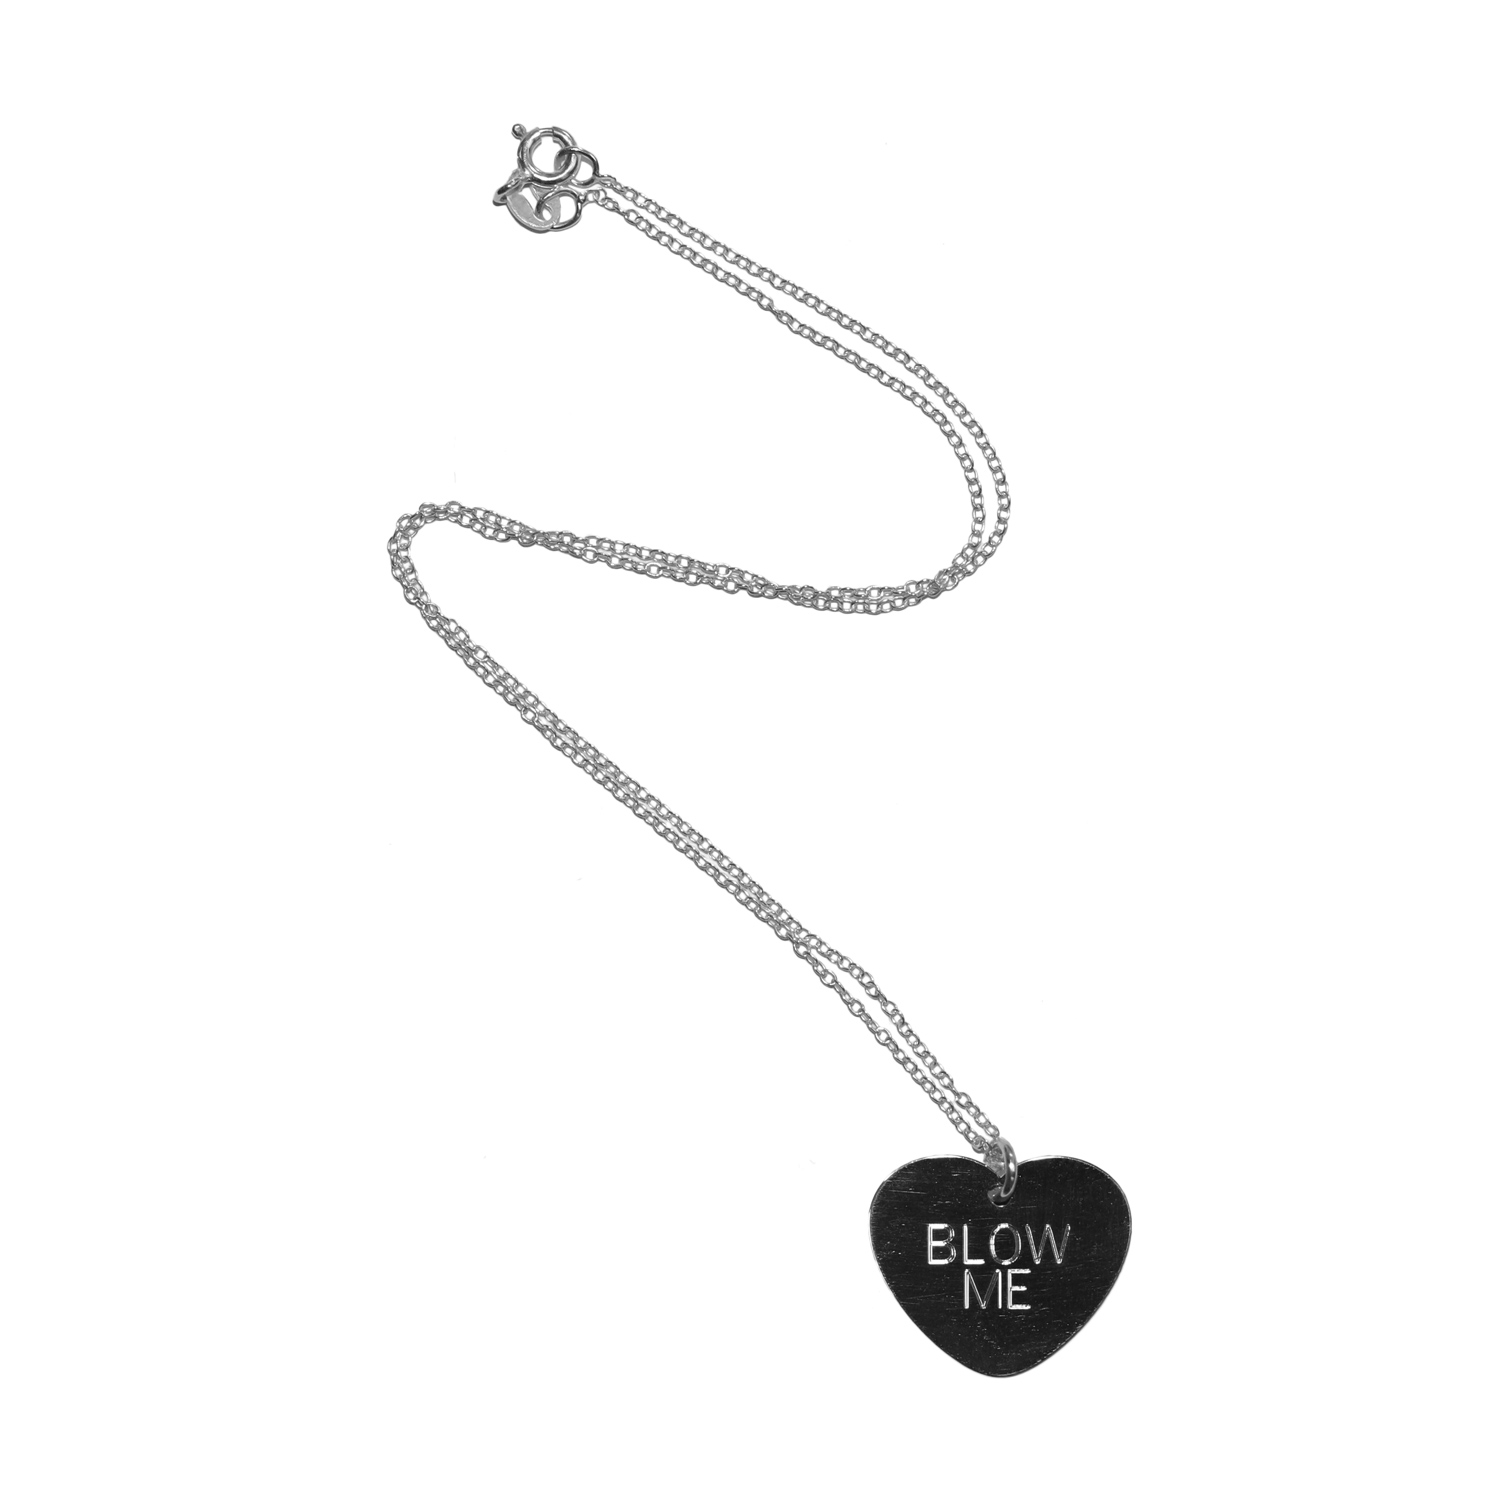 Blow Me Necklace (Sterling Silver)